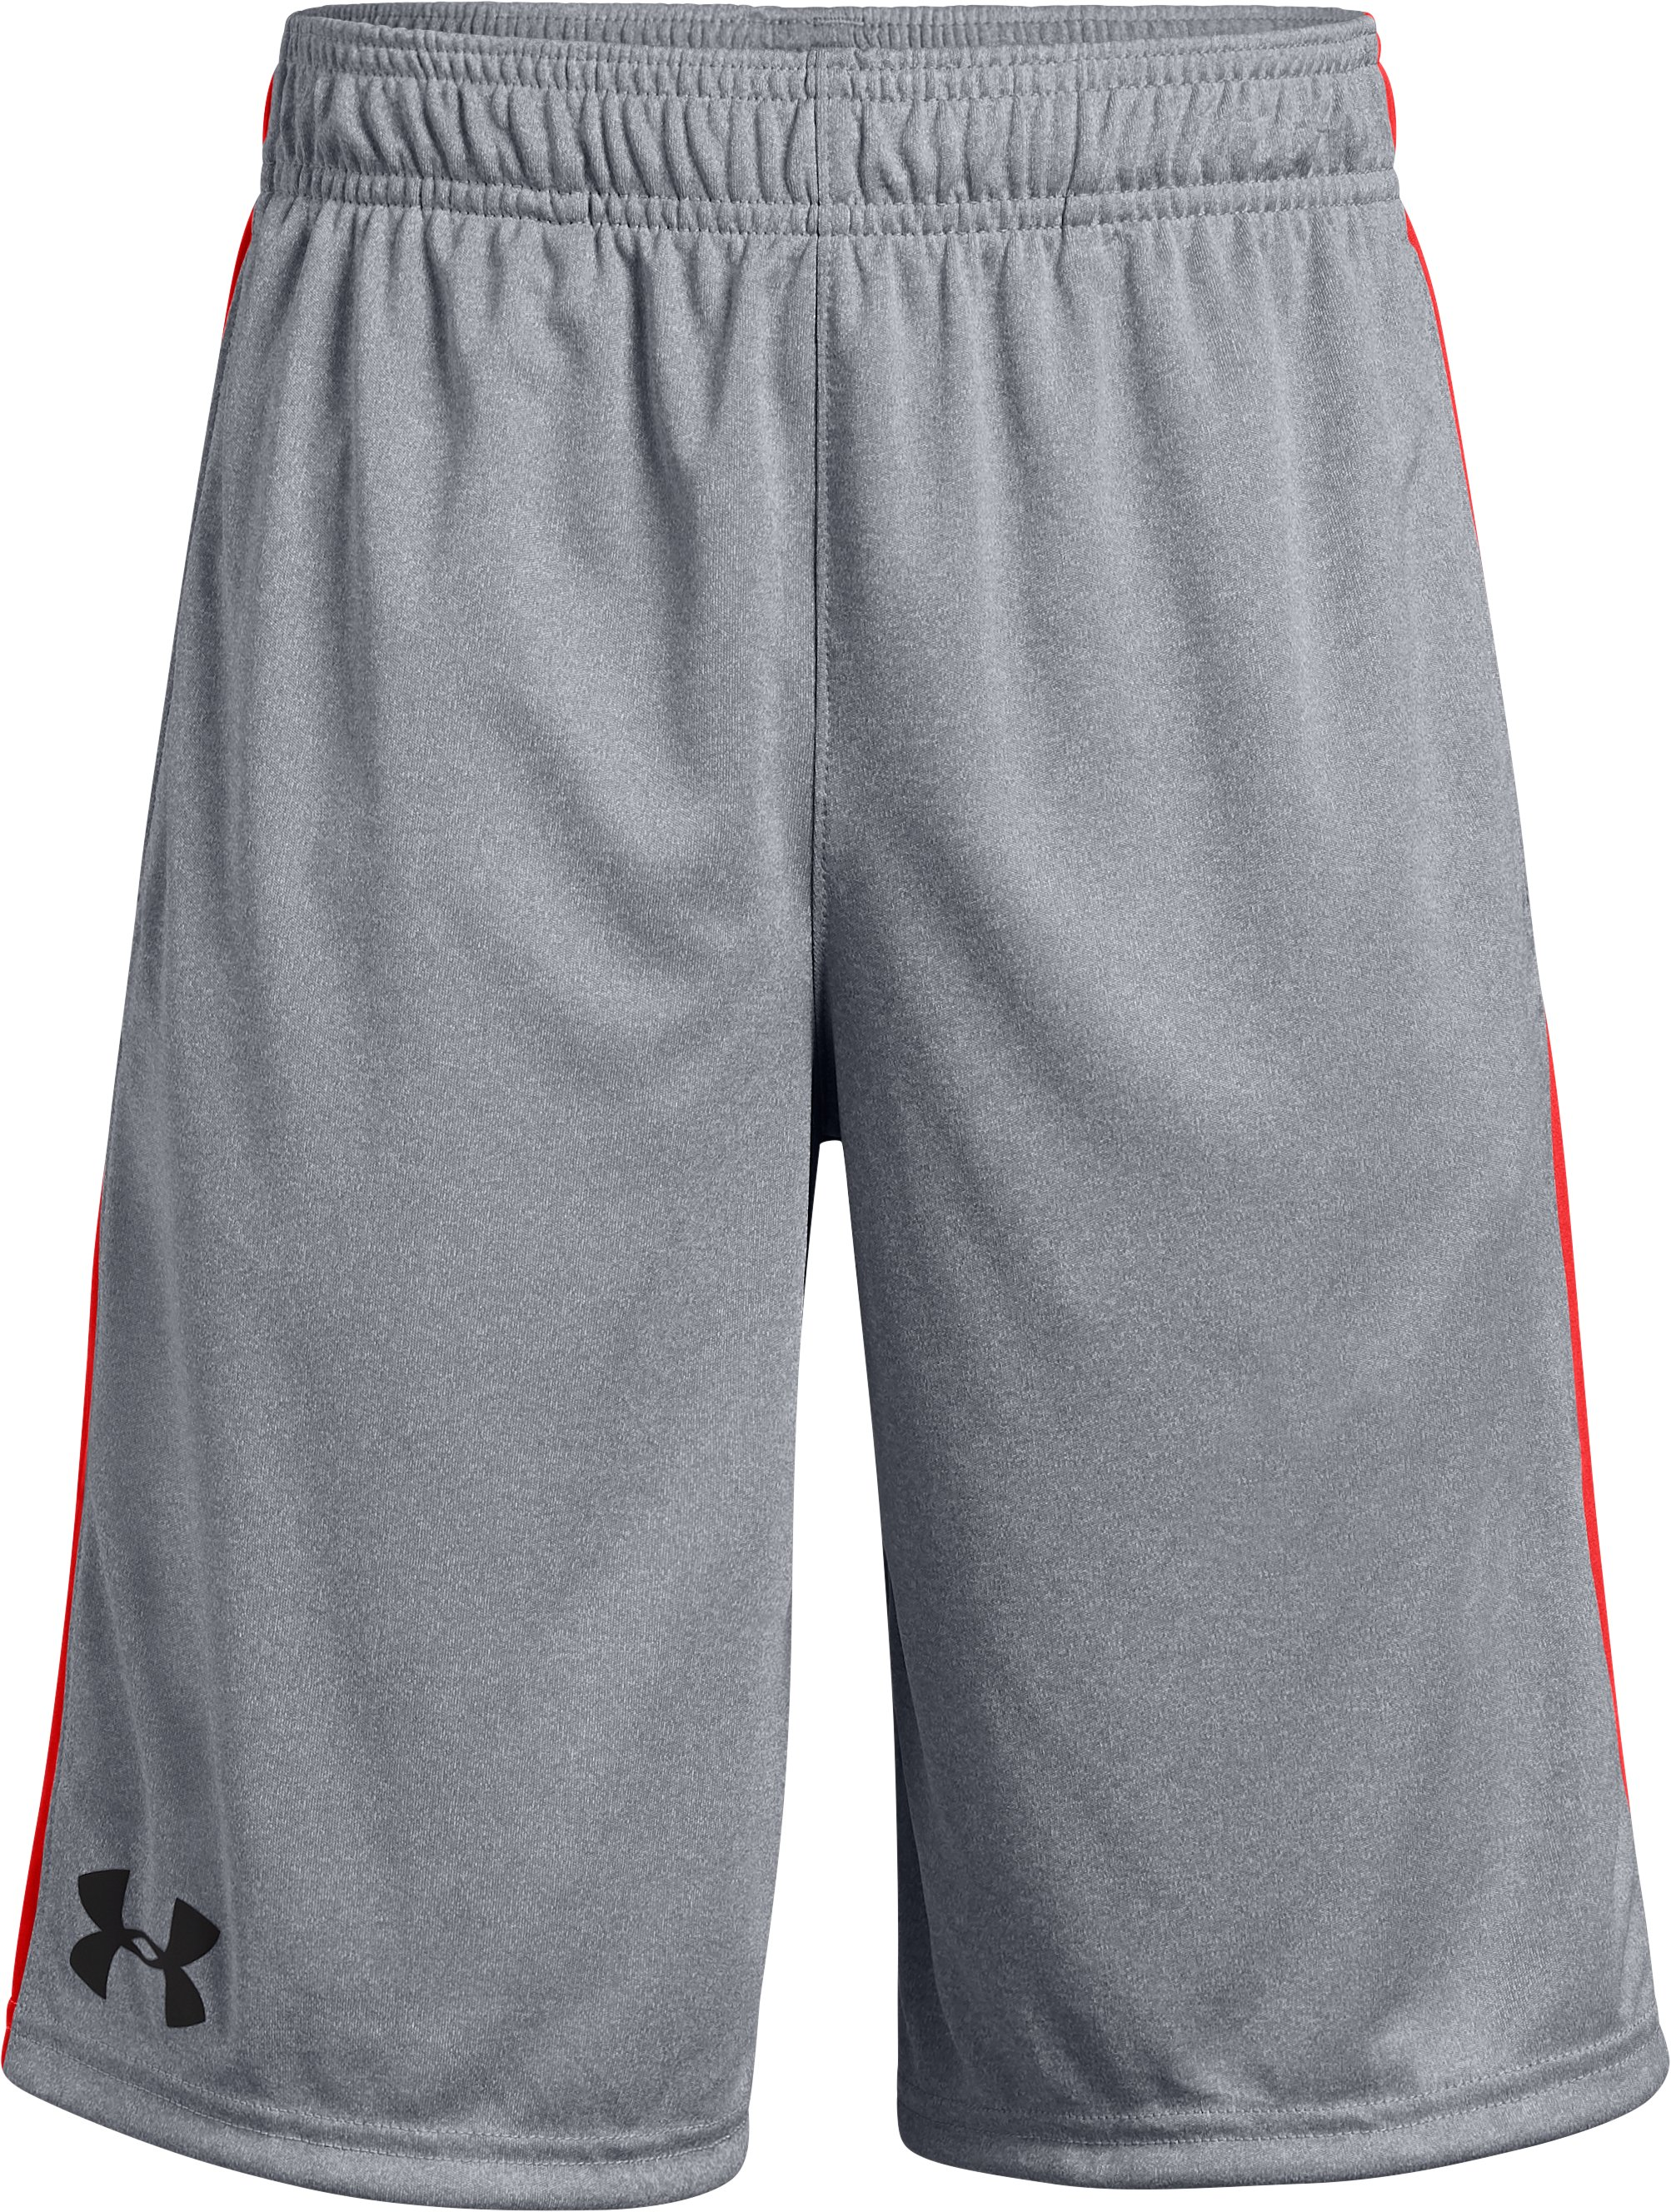 UA Stunt Short, STEEL LIGHT HEATHER, zoomed